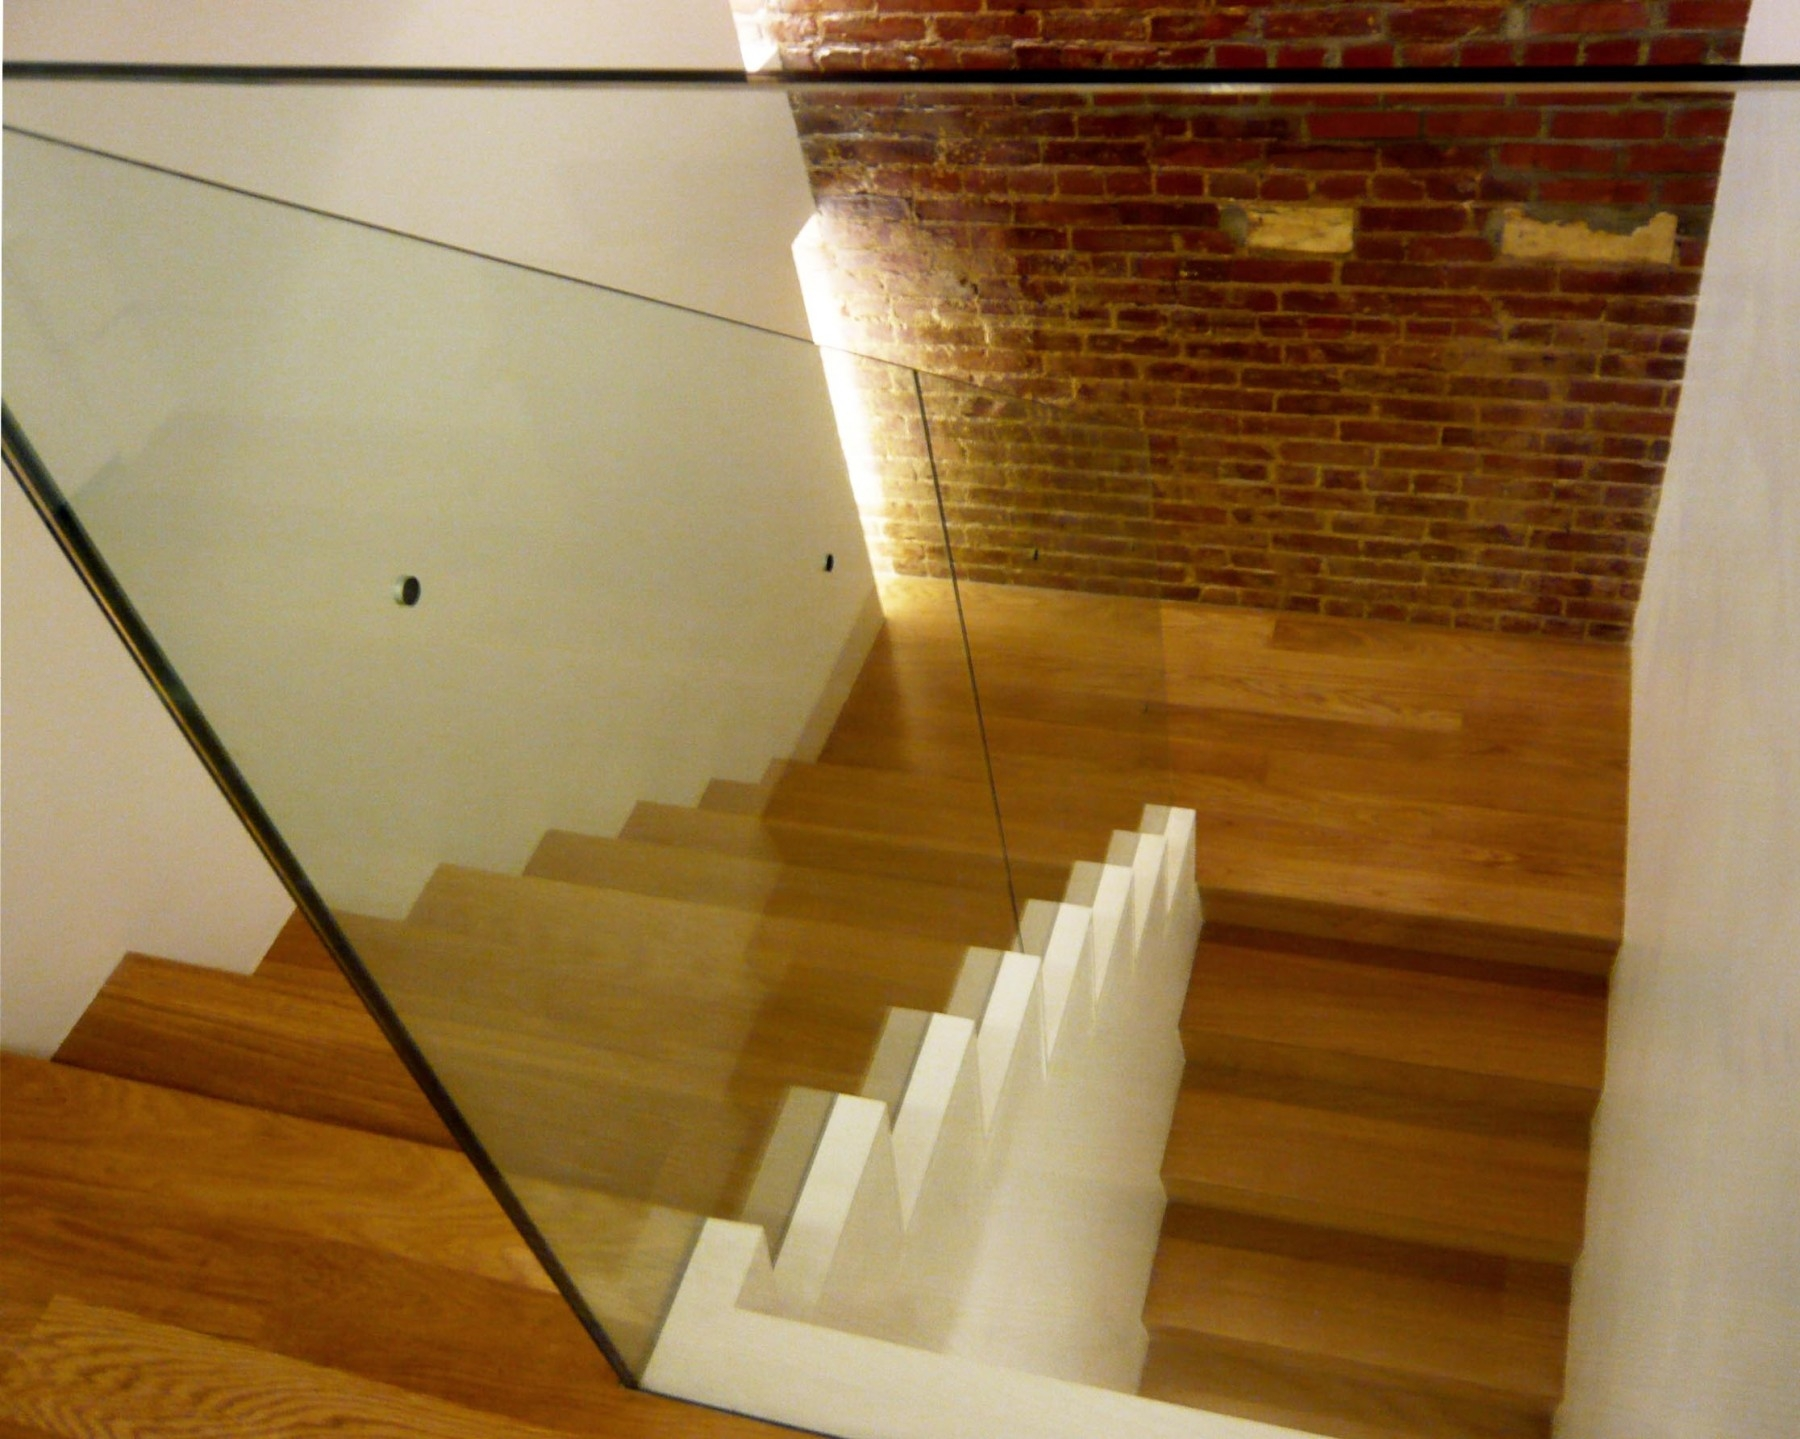 Spiral Staircase Alternatives For Your Nyc Duplex Renovation   Spiral Staircase Into Basement   Stair Railing   Attic Stairs   Stair Treads   Stairway   Staircase Ideas